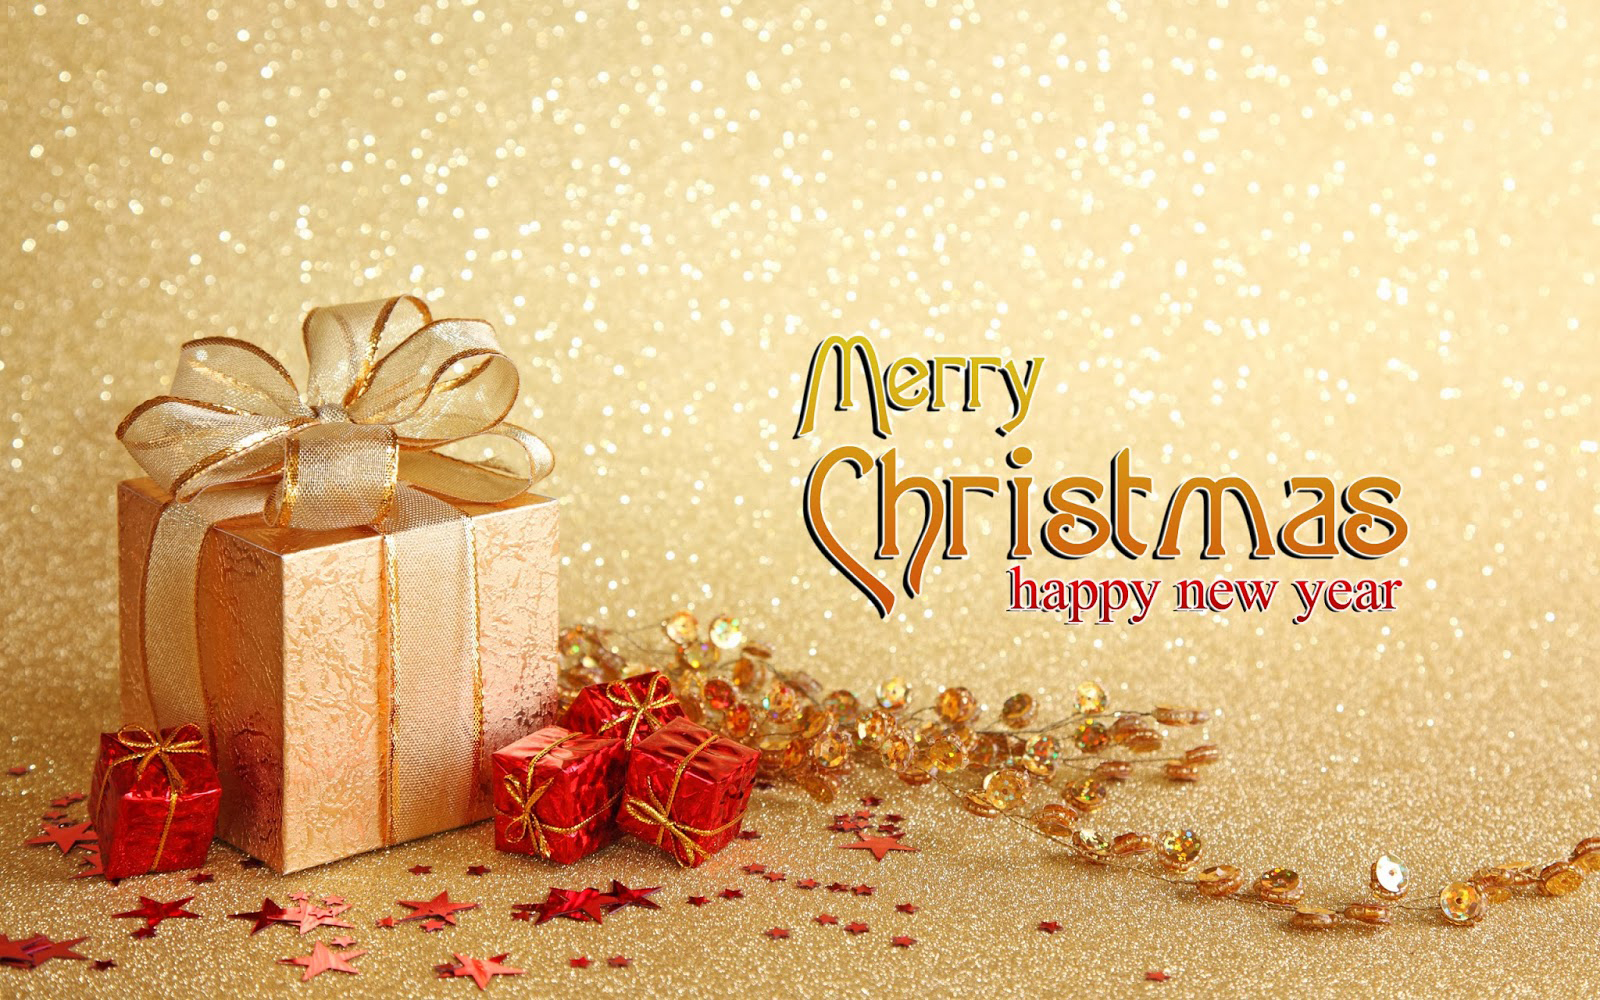 Christmas Greetings Quotes.100 Merry Christmas Wishes Greetings Messages Christmas